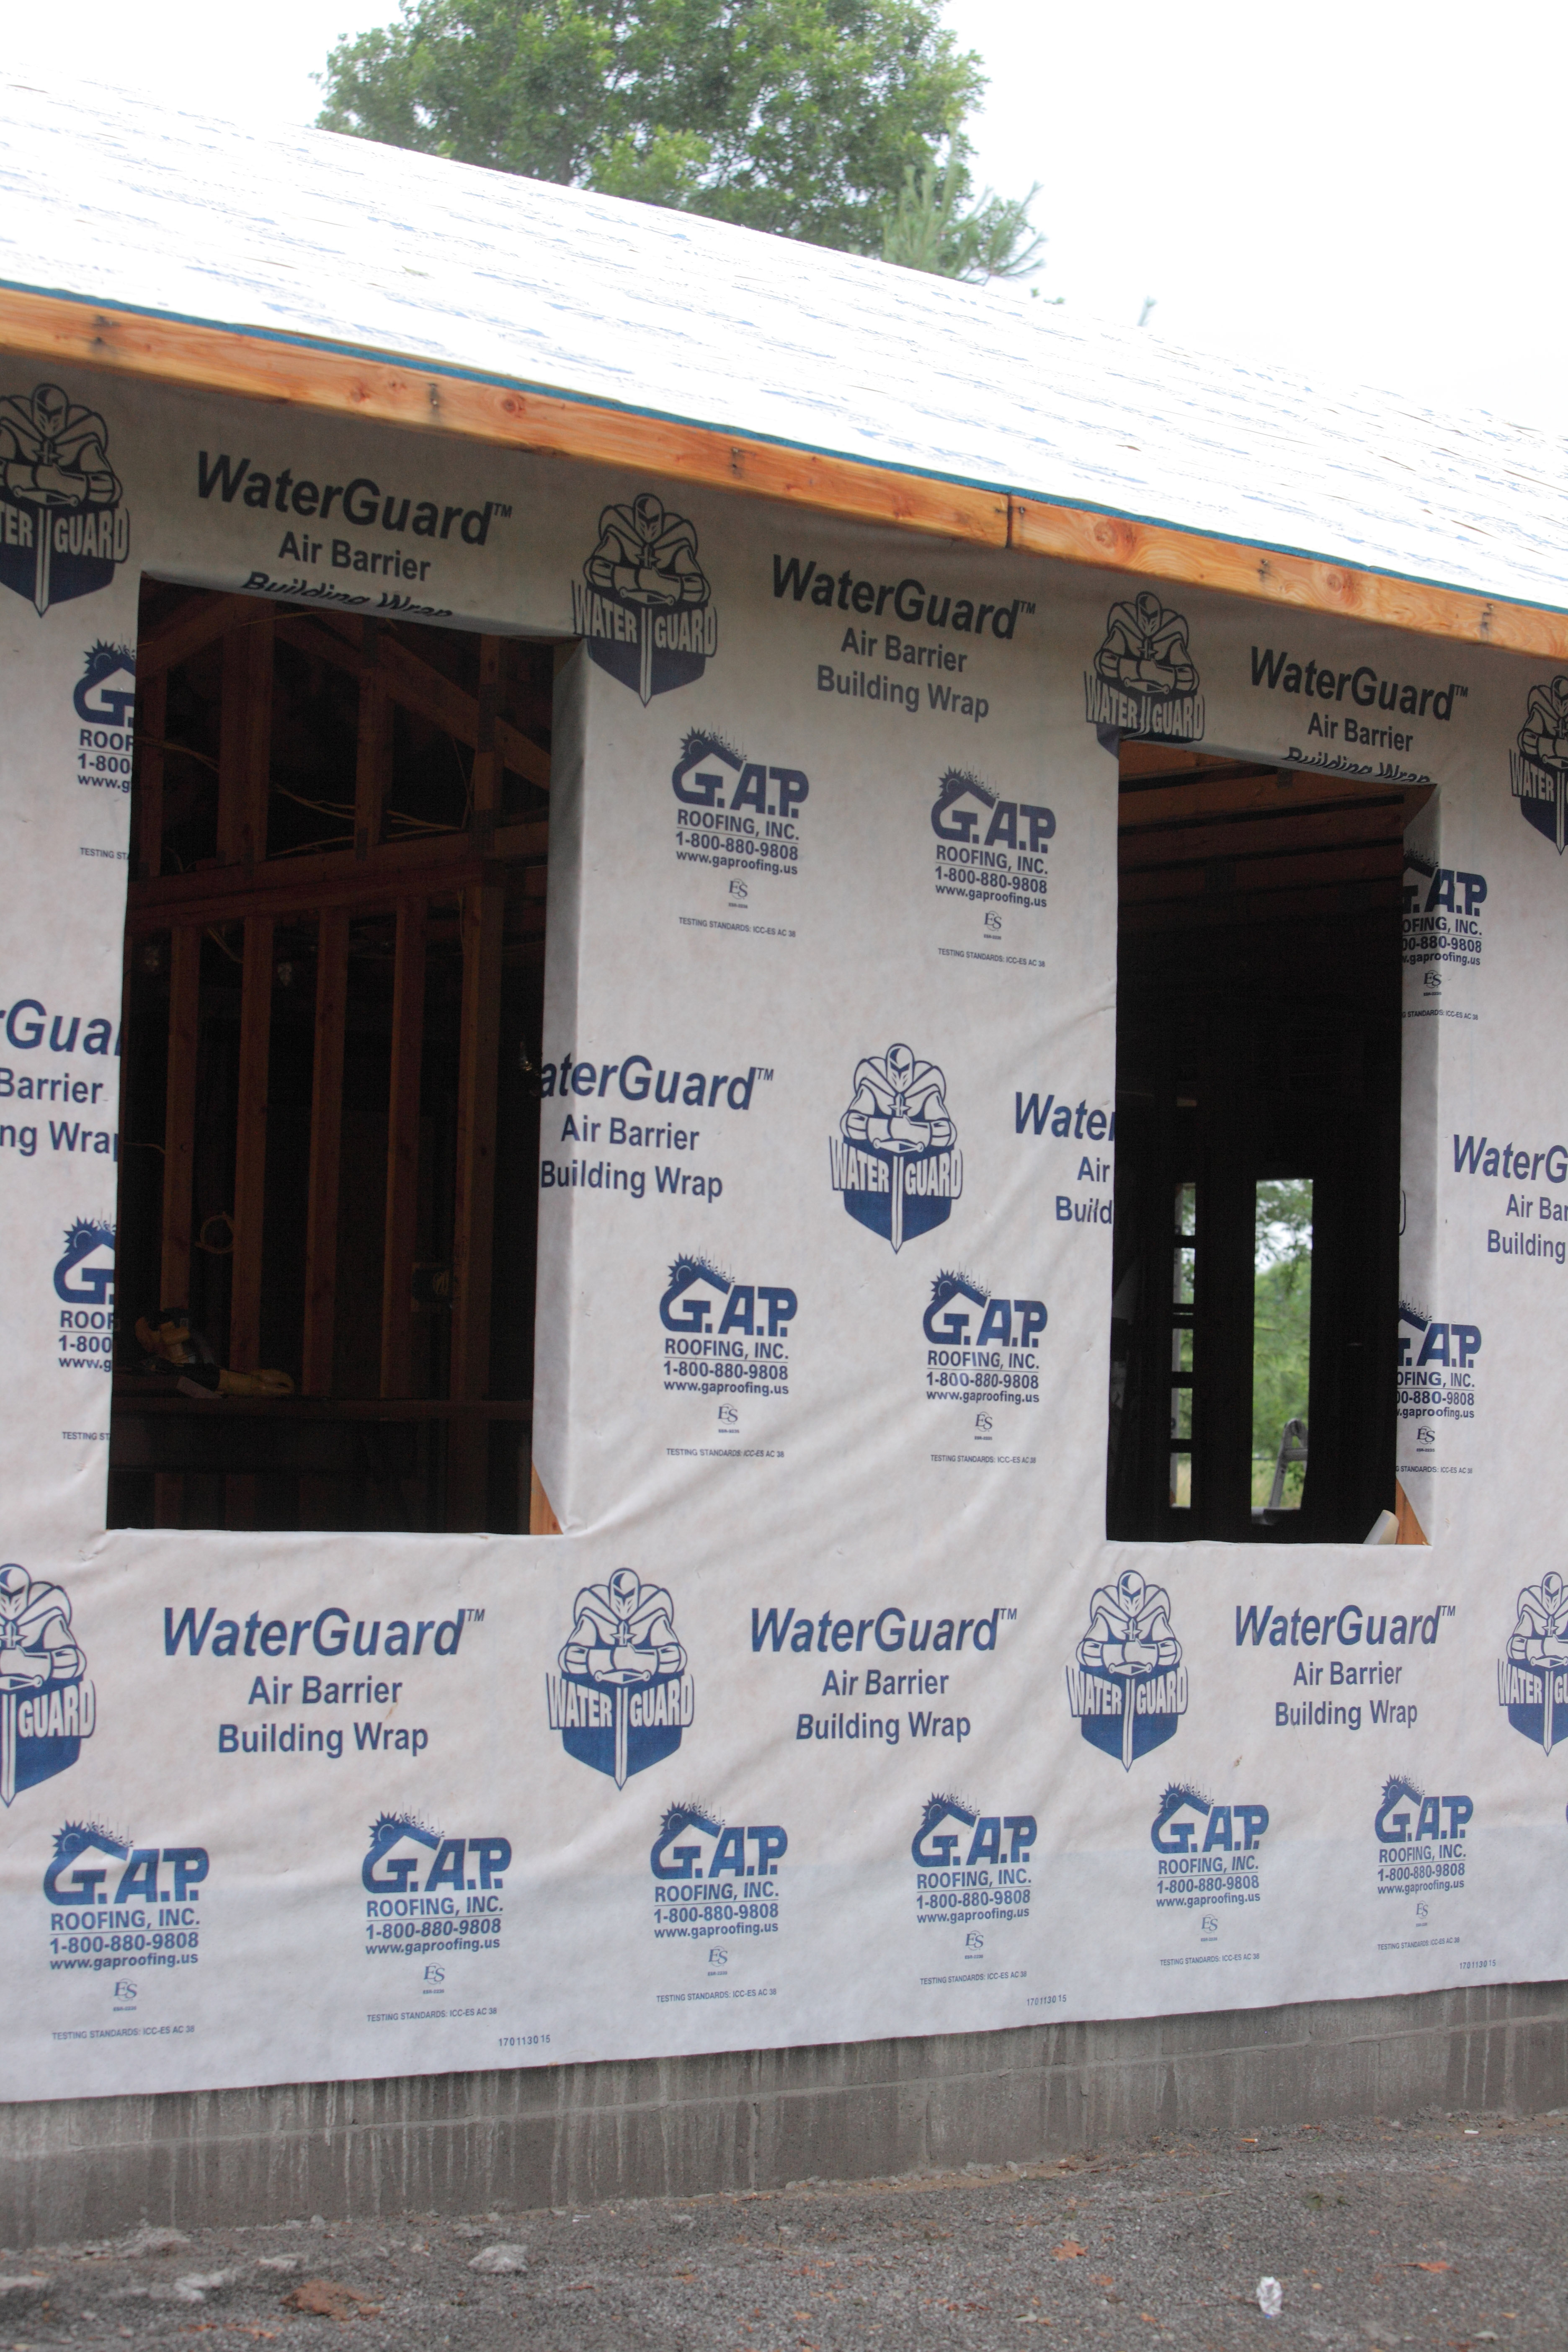 Gap Waterguard Air Barrier G A P Roofing